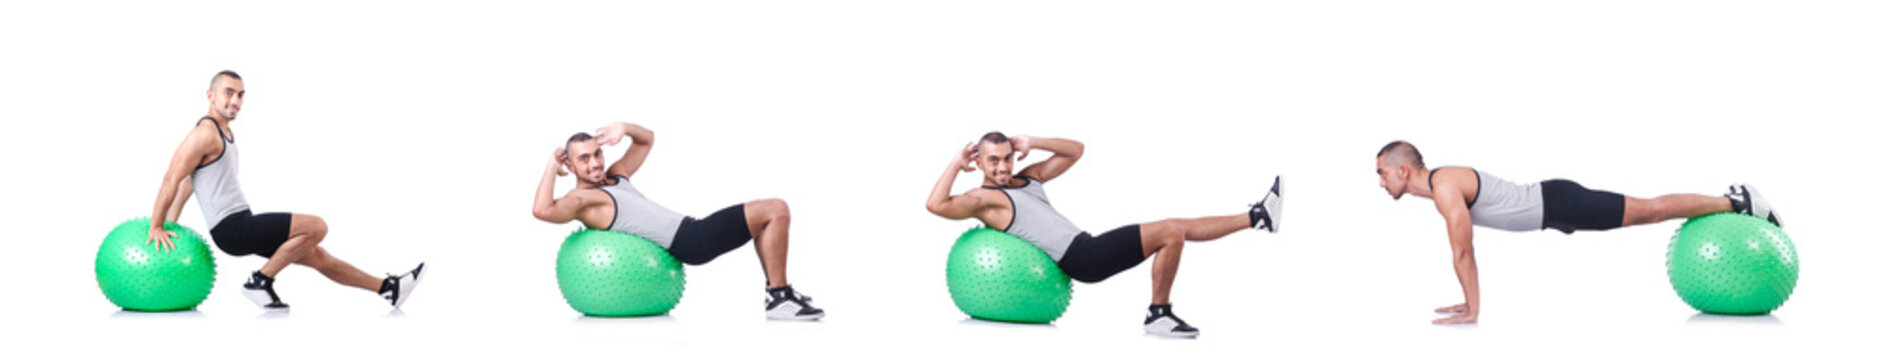 Man with swiss ball doing exercises on white